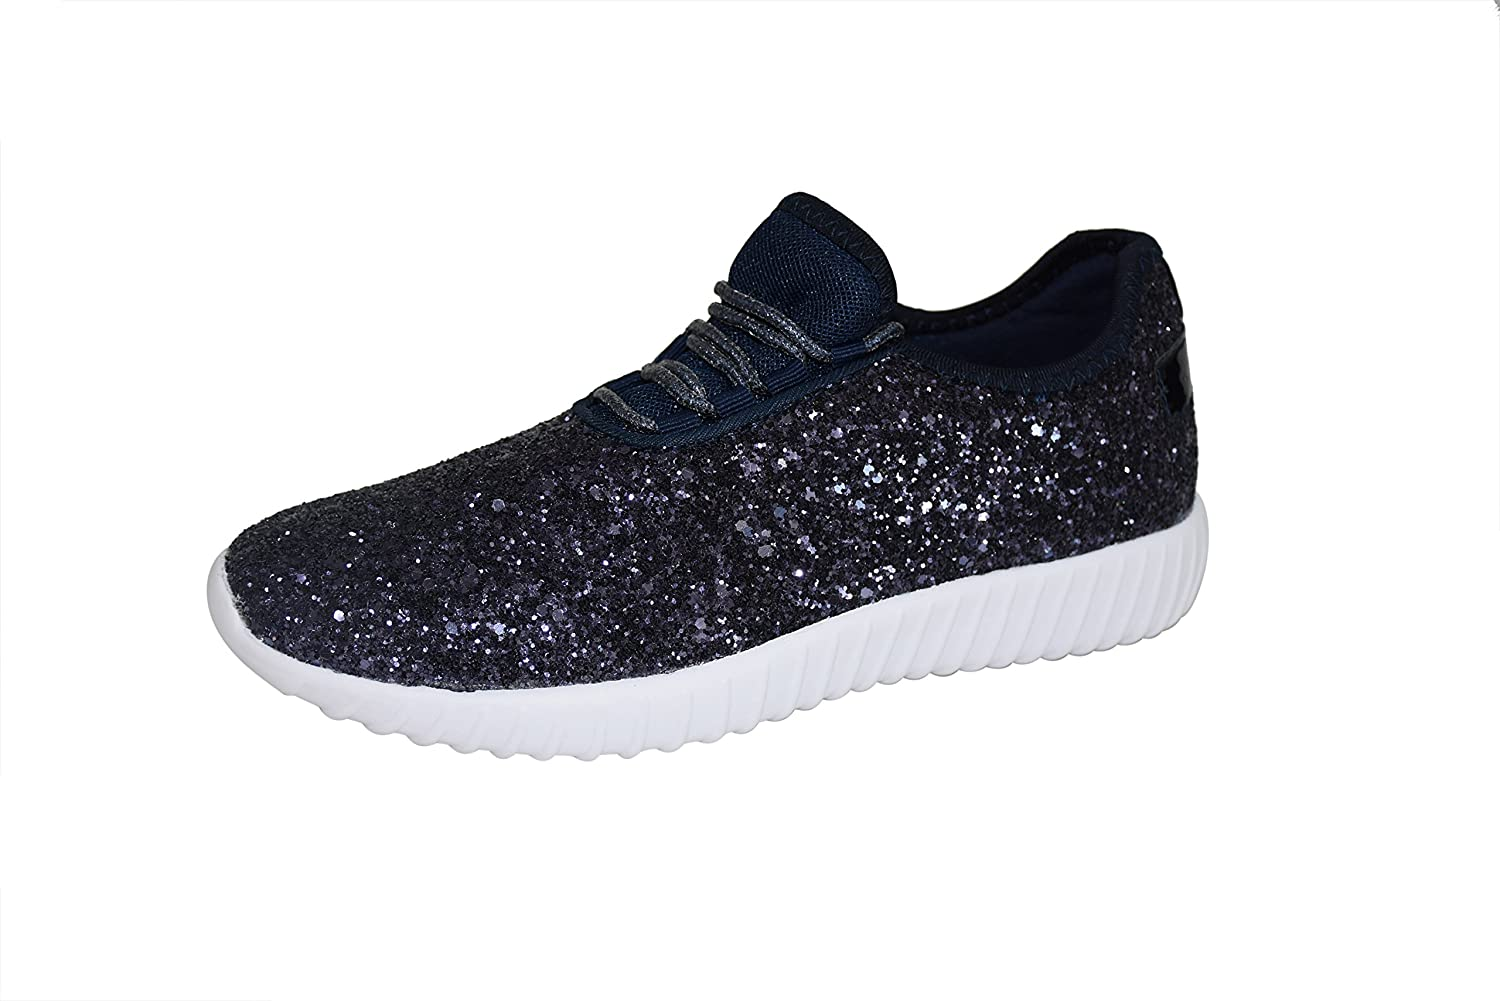 ROXY ROSE Women Fashion Jogger Sneaker - Lightweight Glitter Quilted Lace up Shoes & Elastic Tongue B07CTK1KNG 9 B(M) US Navy